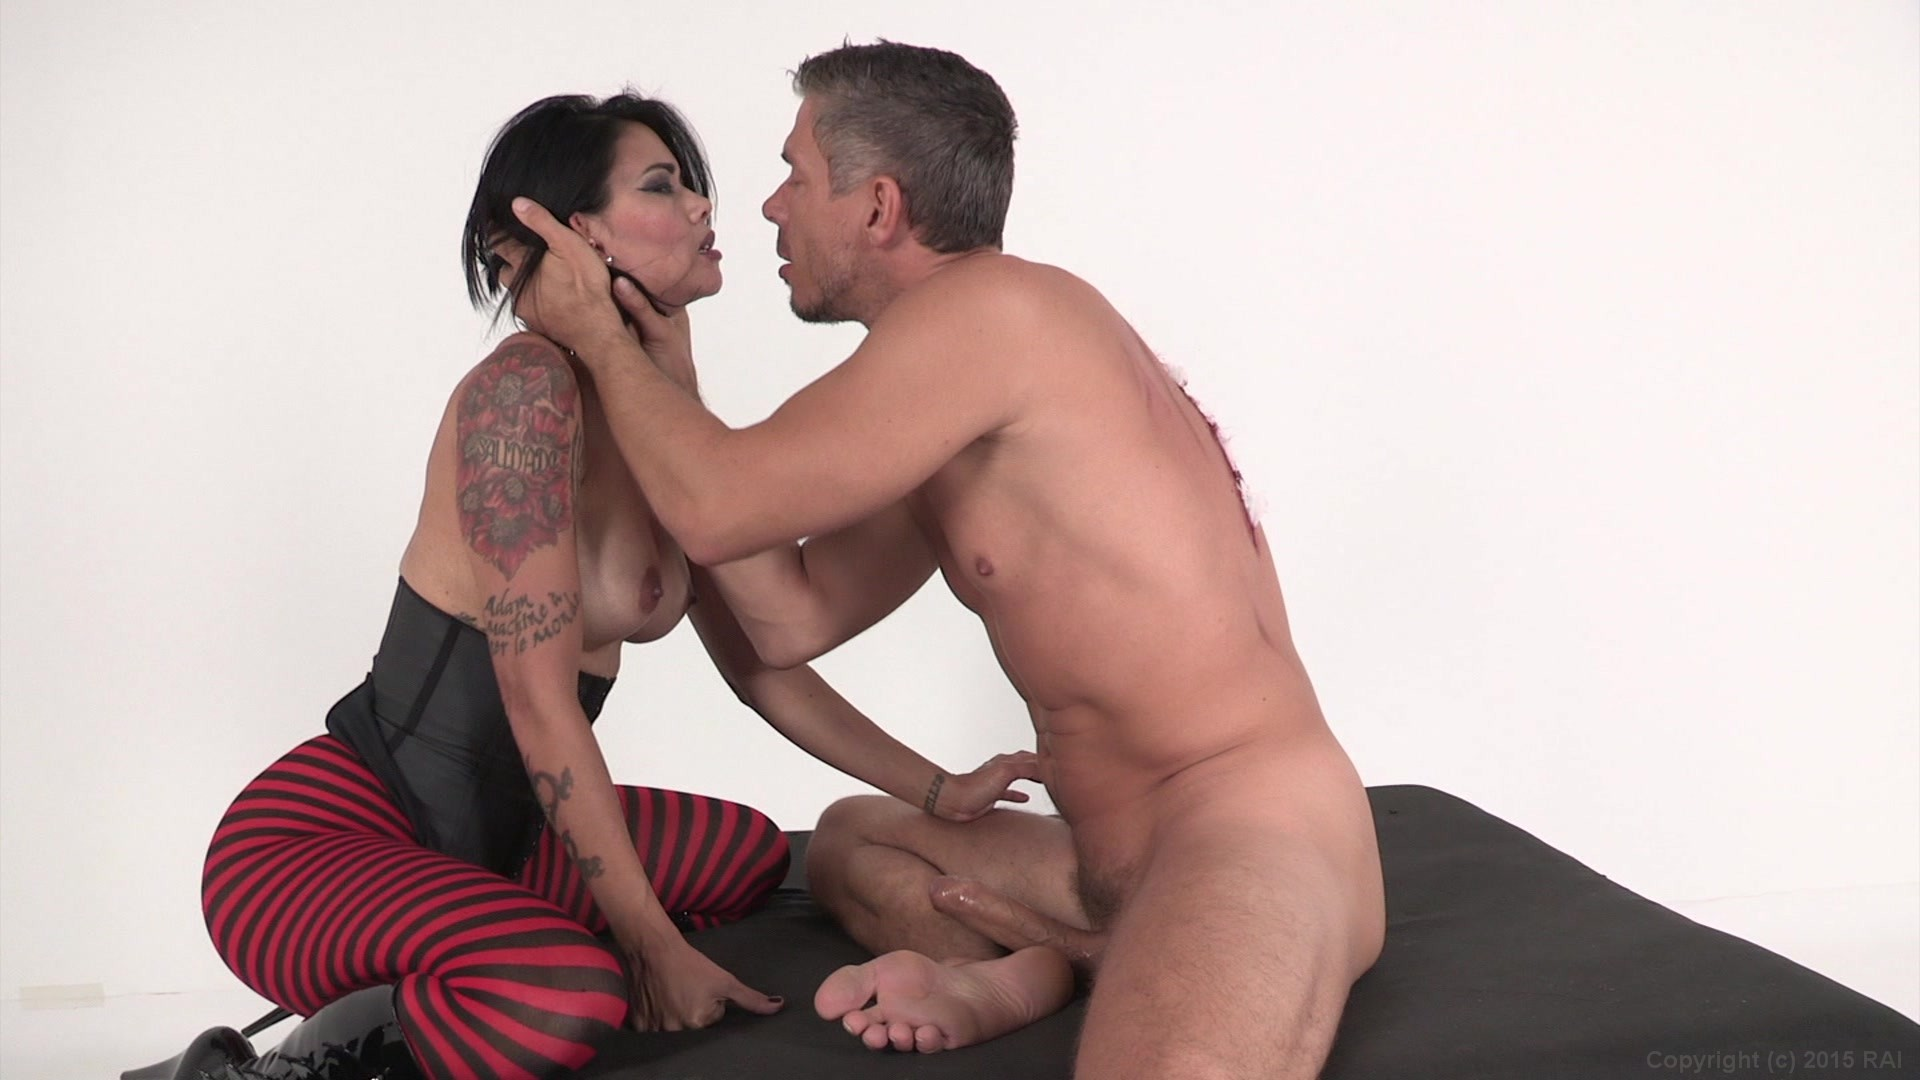 Scene with Mick Blue and Dana Vespoli - image 8 out of 20